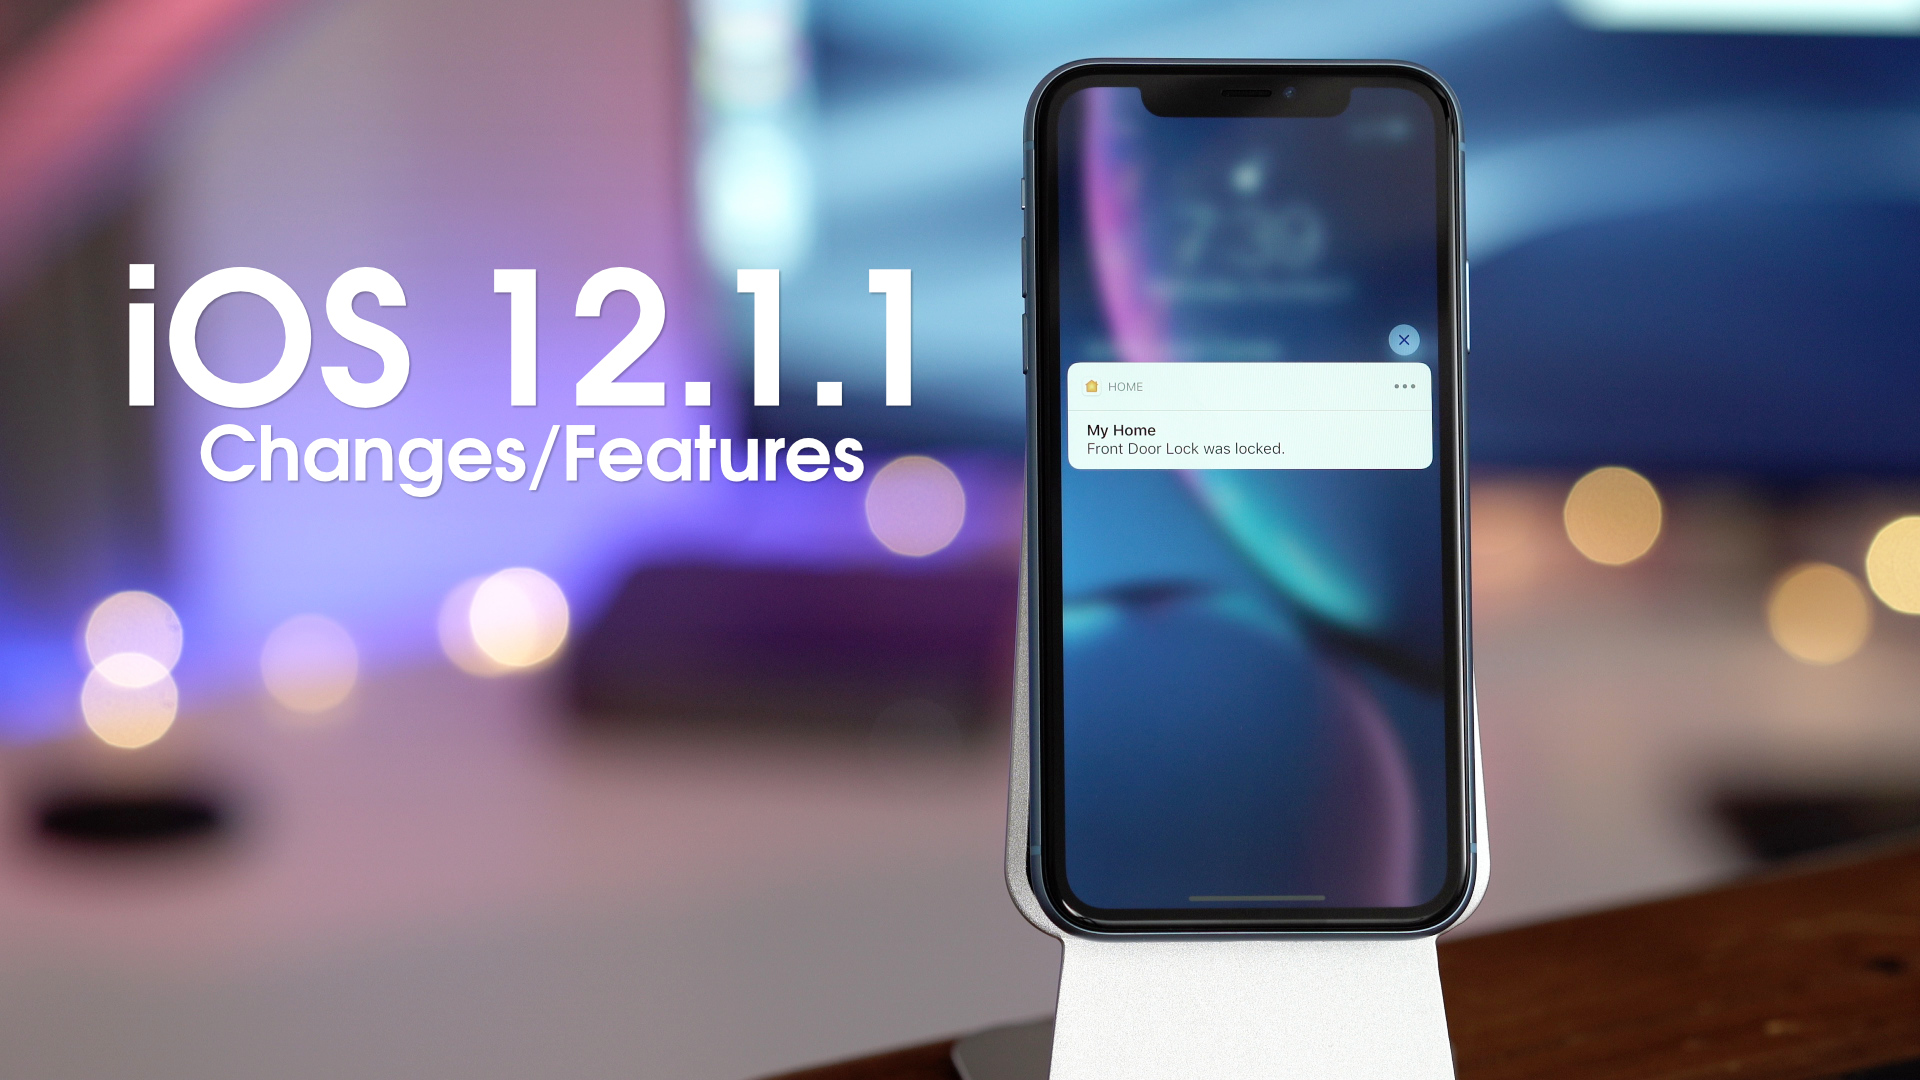 What's new in iOS 12.1.1? [Video]